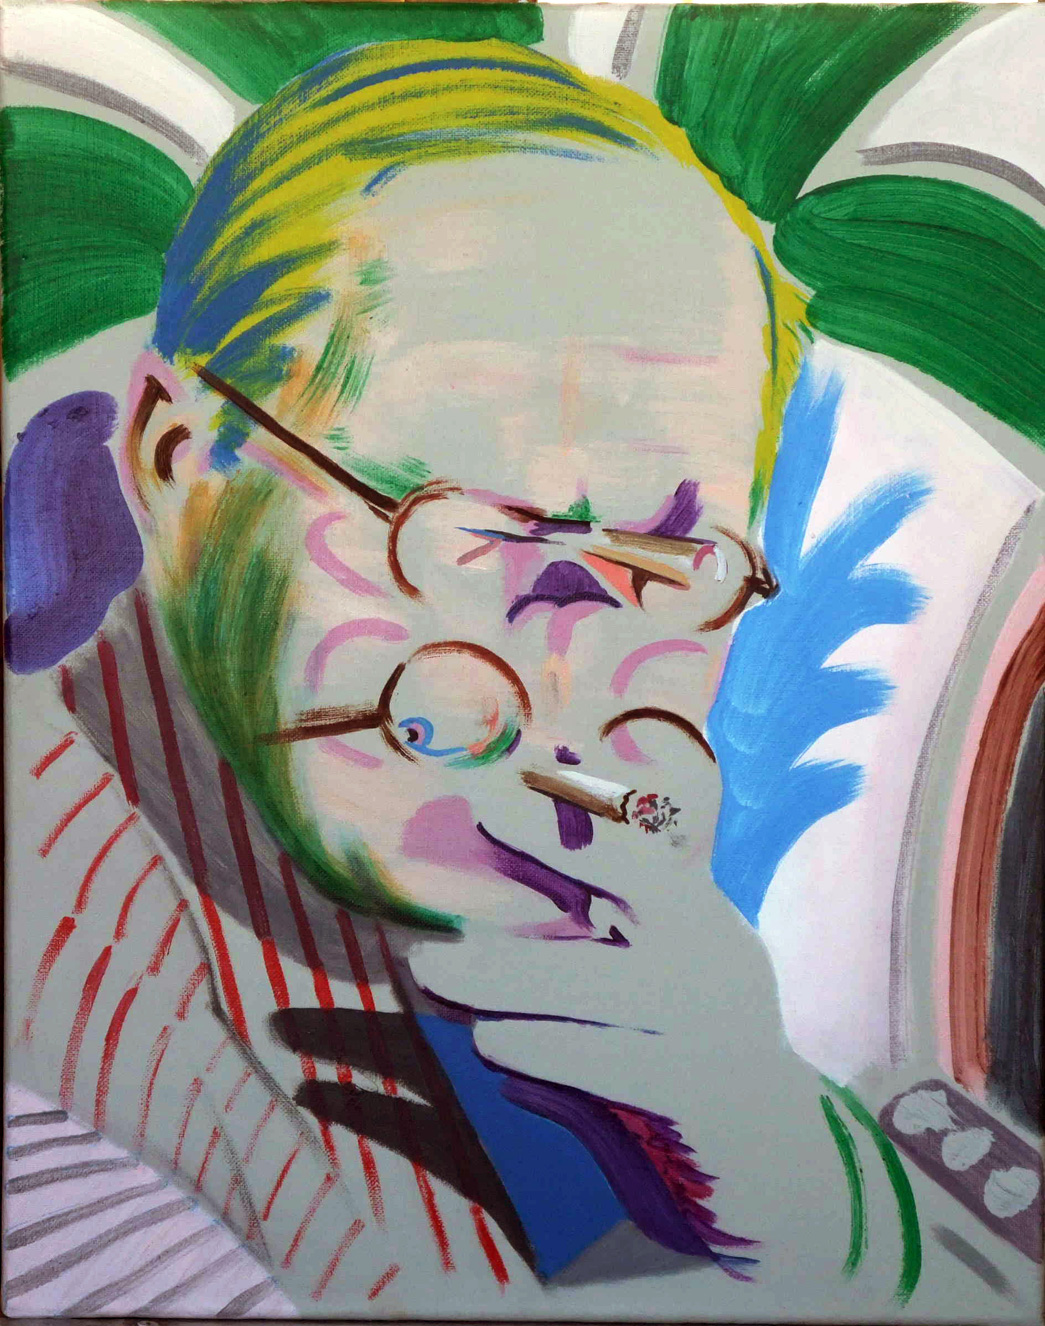 Hockney Takes a Breather by Darren Coffield